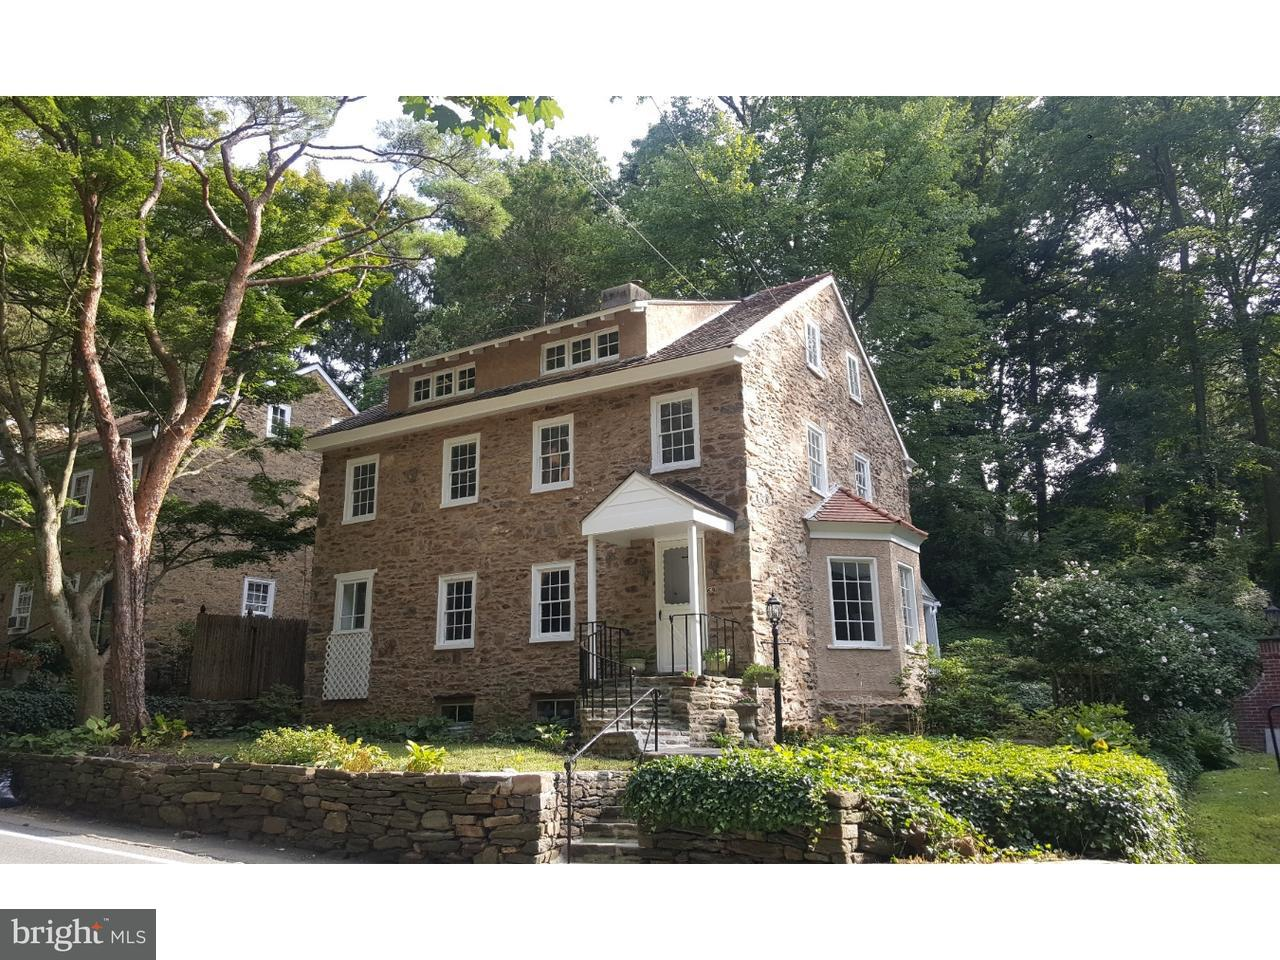 Single Family Home for Sale at 69 W ROSE VALLEY Road Rose Valley, Pennsylvania 19086 United States